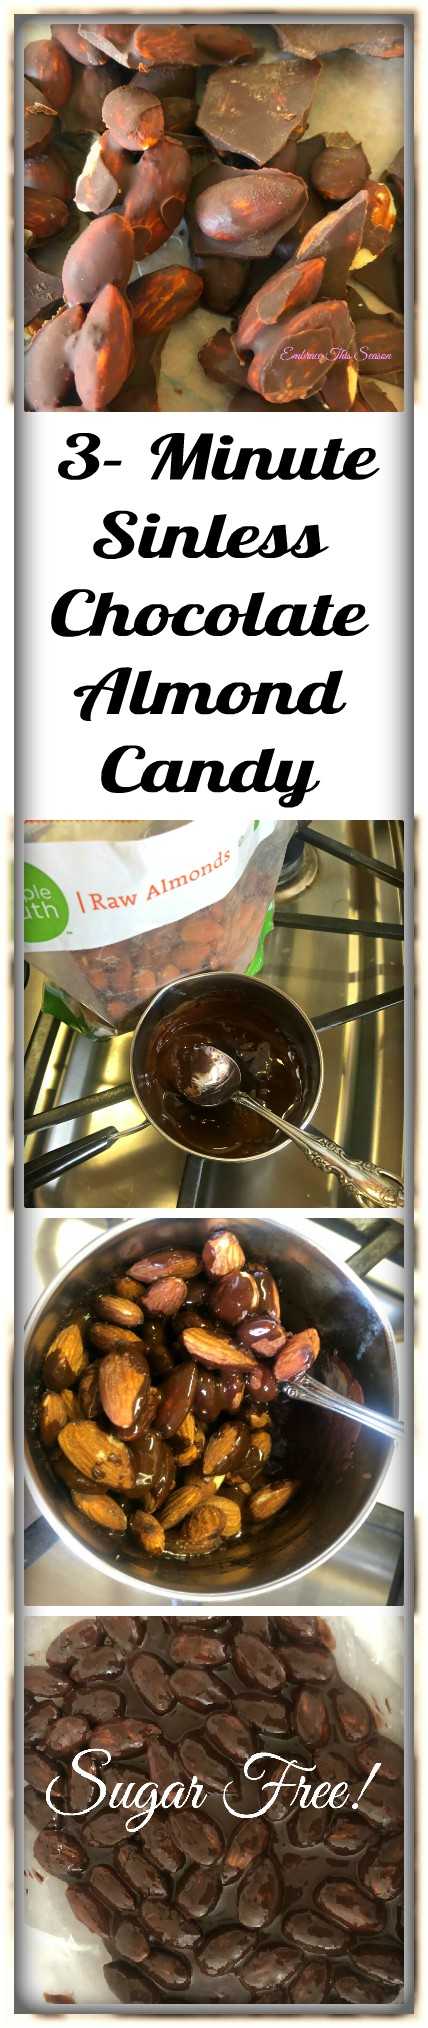 3-Minute Sinless Chocolate Almond Candy @EmbraceThisSeason.com